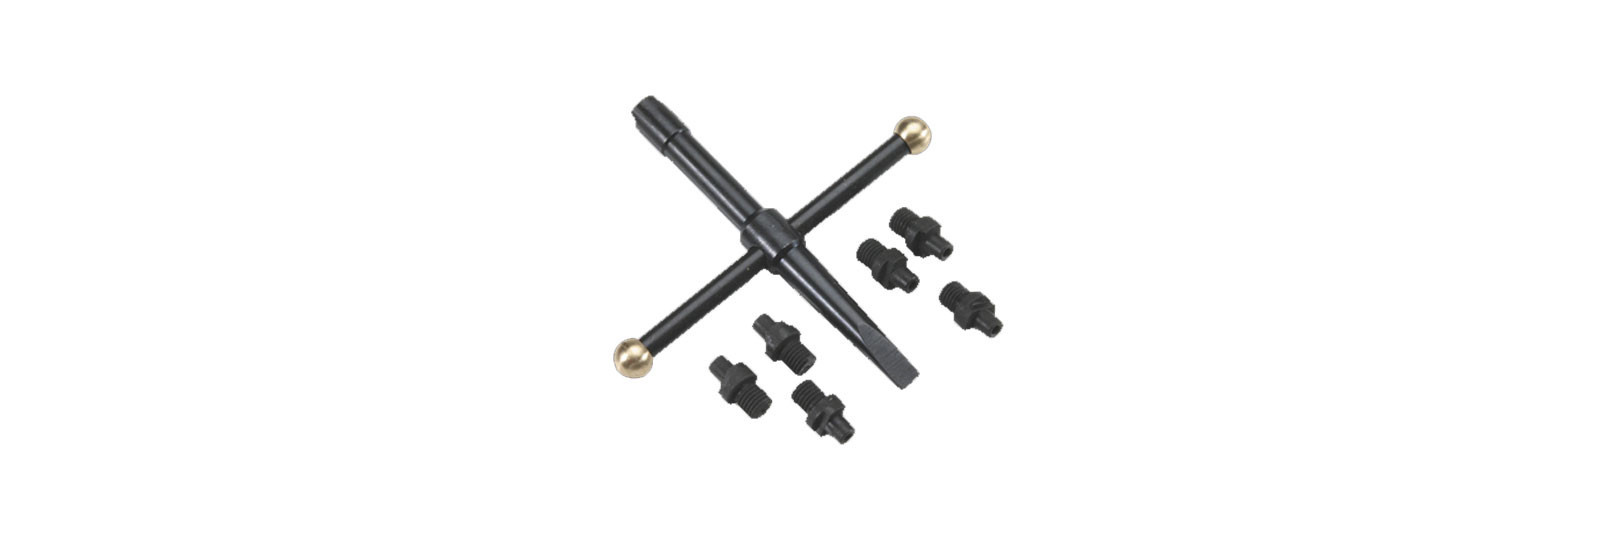 Cruciform nipple wrench set for revolver U015 with 6...